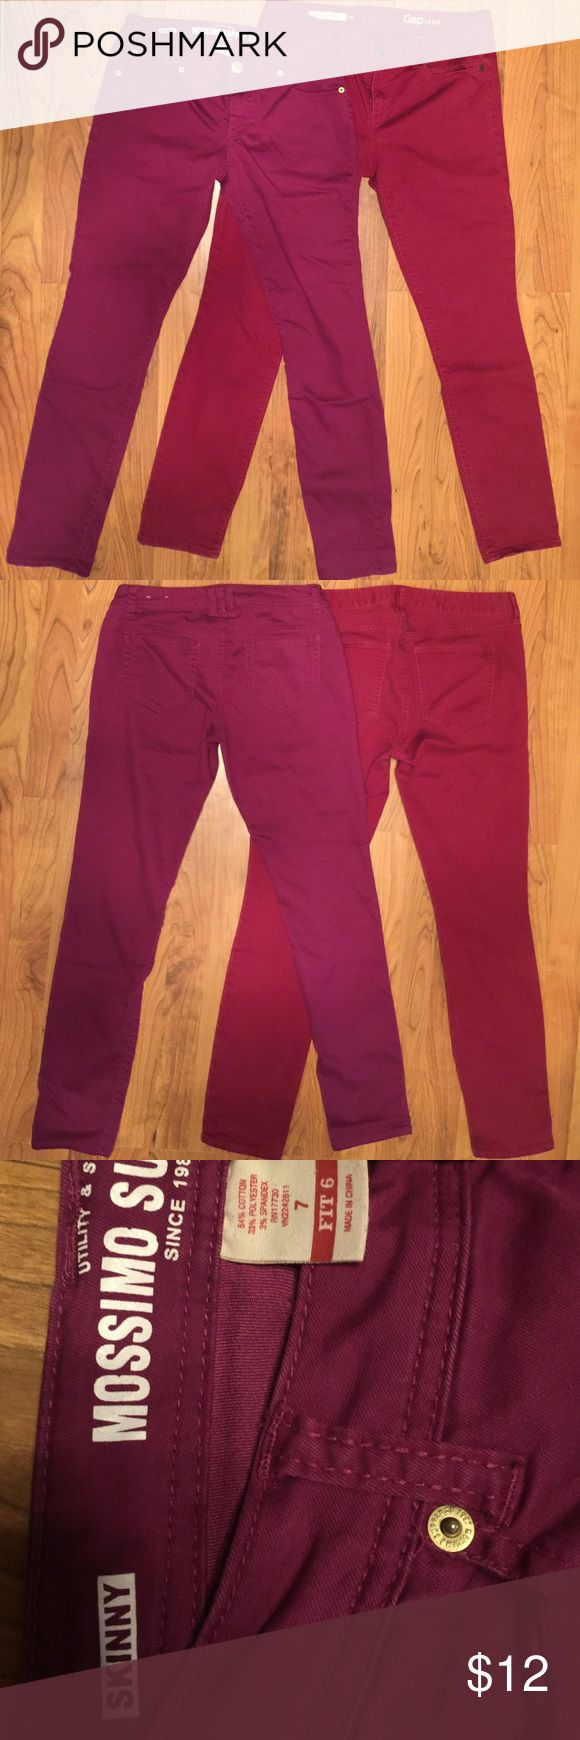 "Bundle Skinny Jeans:  Gap & Mossimo Size 7 Bundle Of 2 Pairs Skinny Jeans.  FYI:  Note Both Jeans ARE SIZE 7, NOT 8.   1) Gap 1969 Always Skinny Red-Purple.  Size 29 Regular,  16"" Waist, 28"" Long.  91% Cotton, 6% Polyester,  3% Spandex.  Condition:  Used Good.  2) MOSSIMO Stretch Skinny Jeans.  Color:  Raspberry/Fuscia.  Size:  Women's 7/Fit 6.  Waist:  15"",  28"" Long.  Condition: Used Good.  64% Cotton.  34% Polyester,  3% Spandex.  These Are Cool Stretch Skinny Jeans.  Think ""The…"